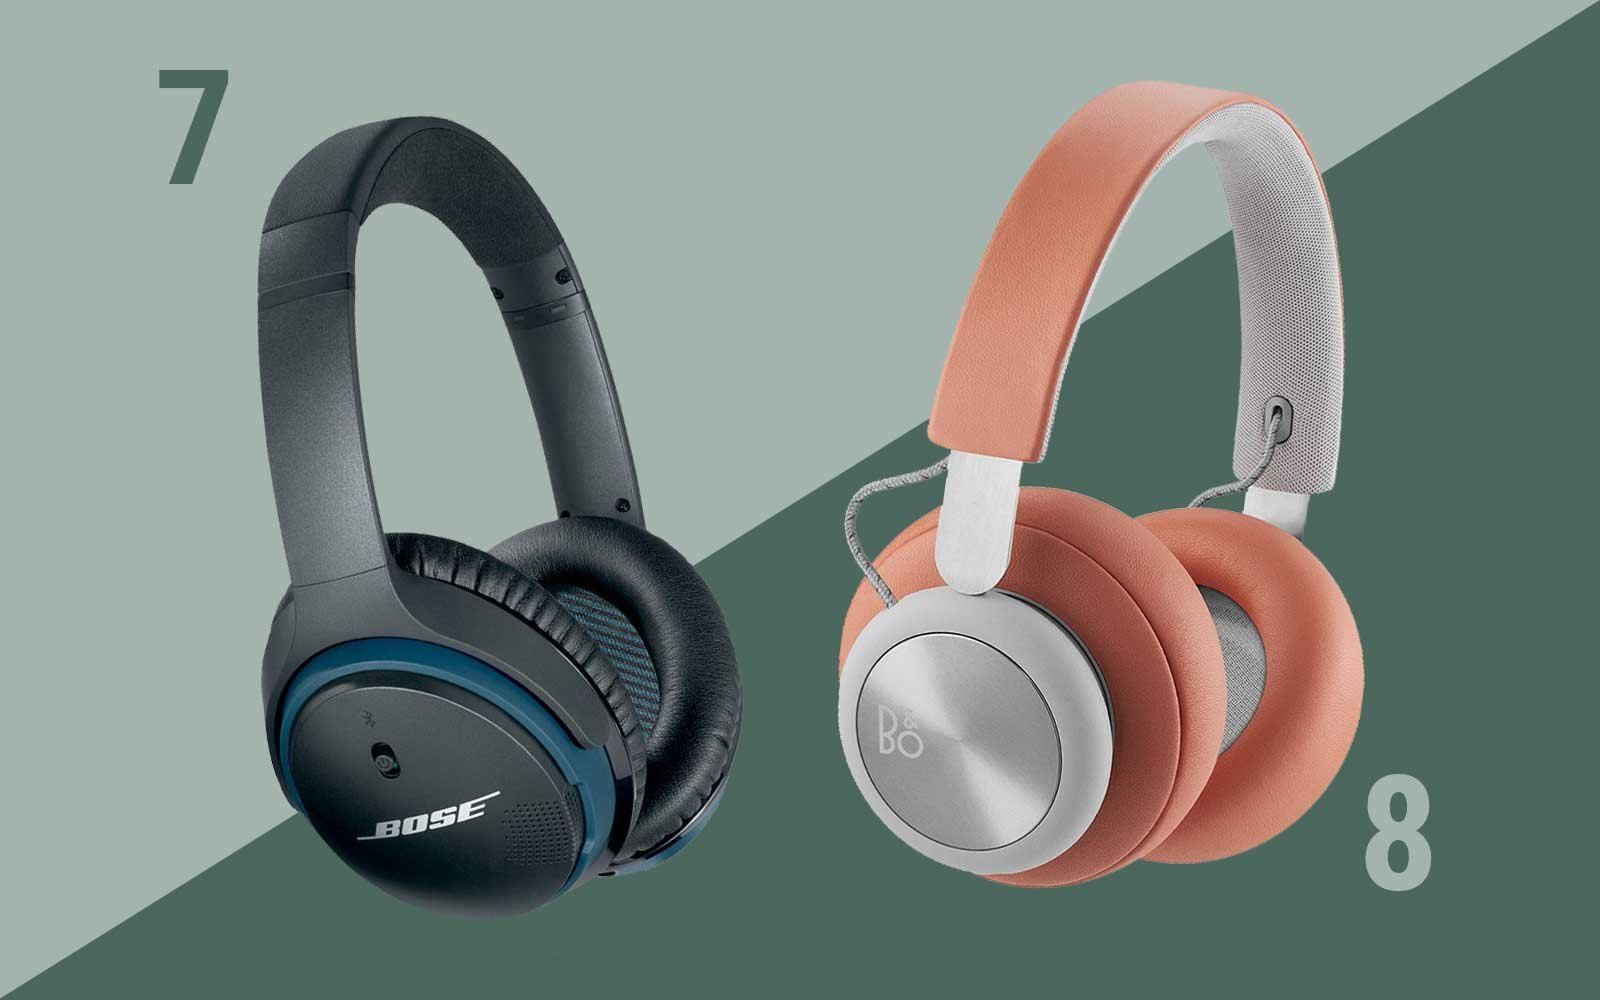 Headsets With Wire Over The Ear Center Quality Pcbpool Fitsornot For Sale 2018 S Best And In Wireless Headphones Travel Rh Travelandleisure Com